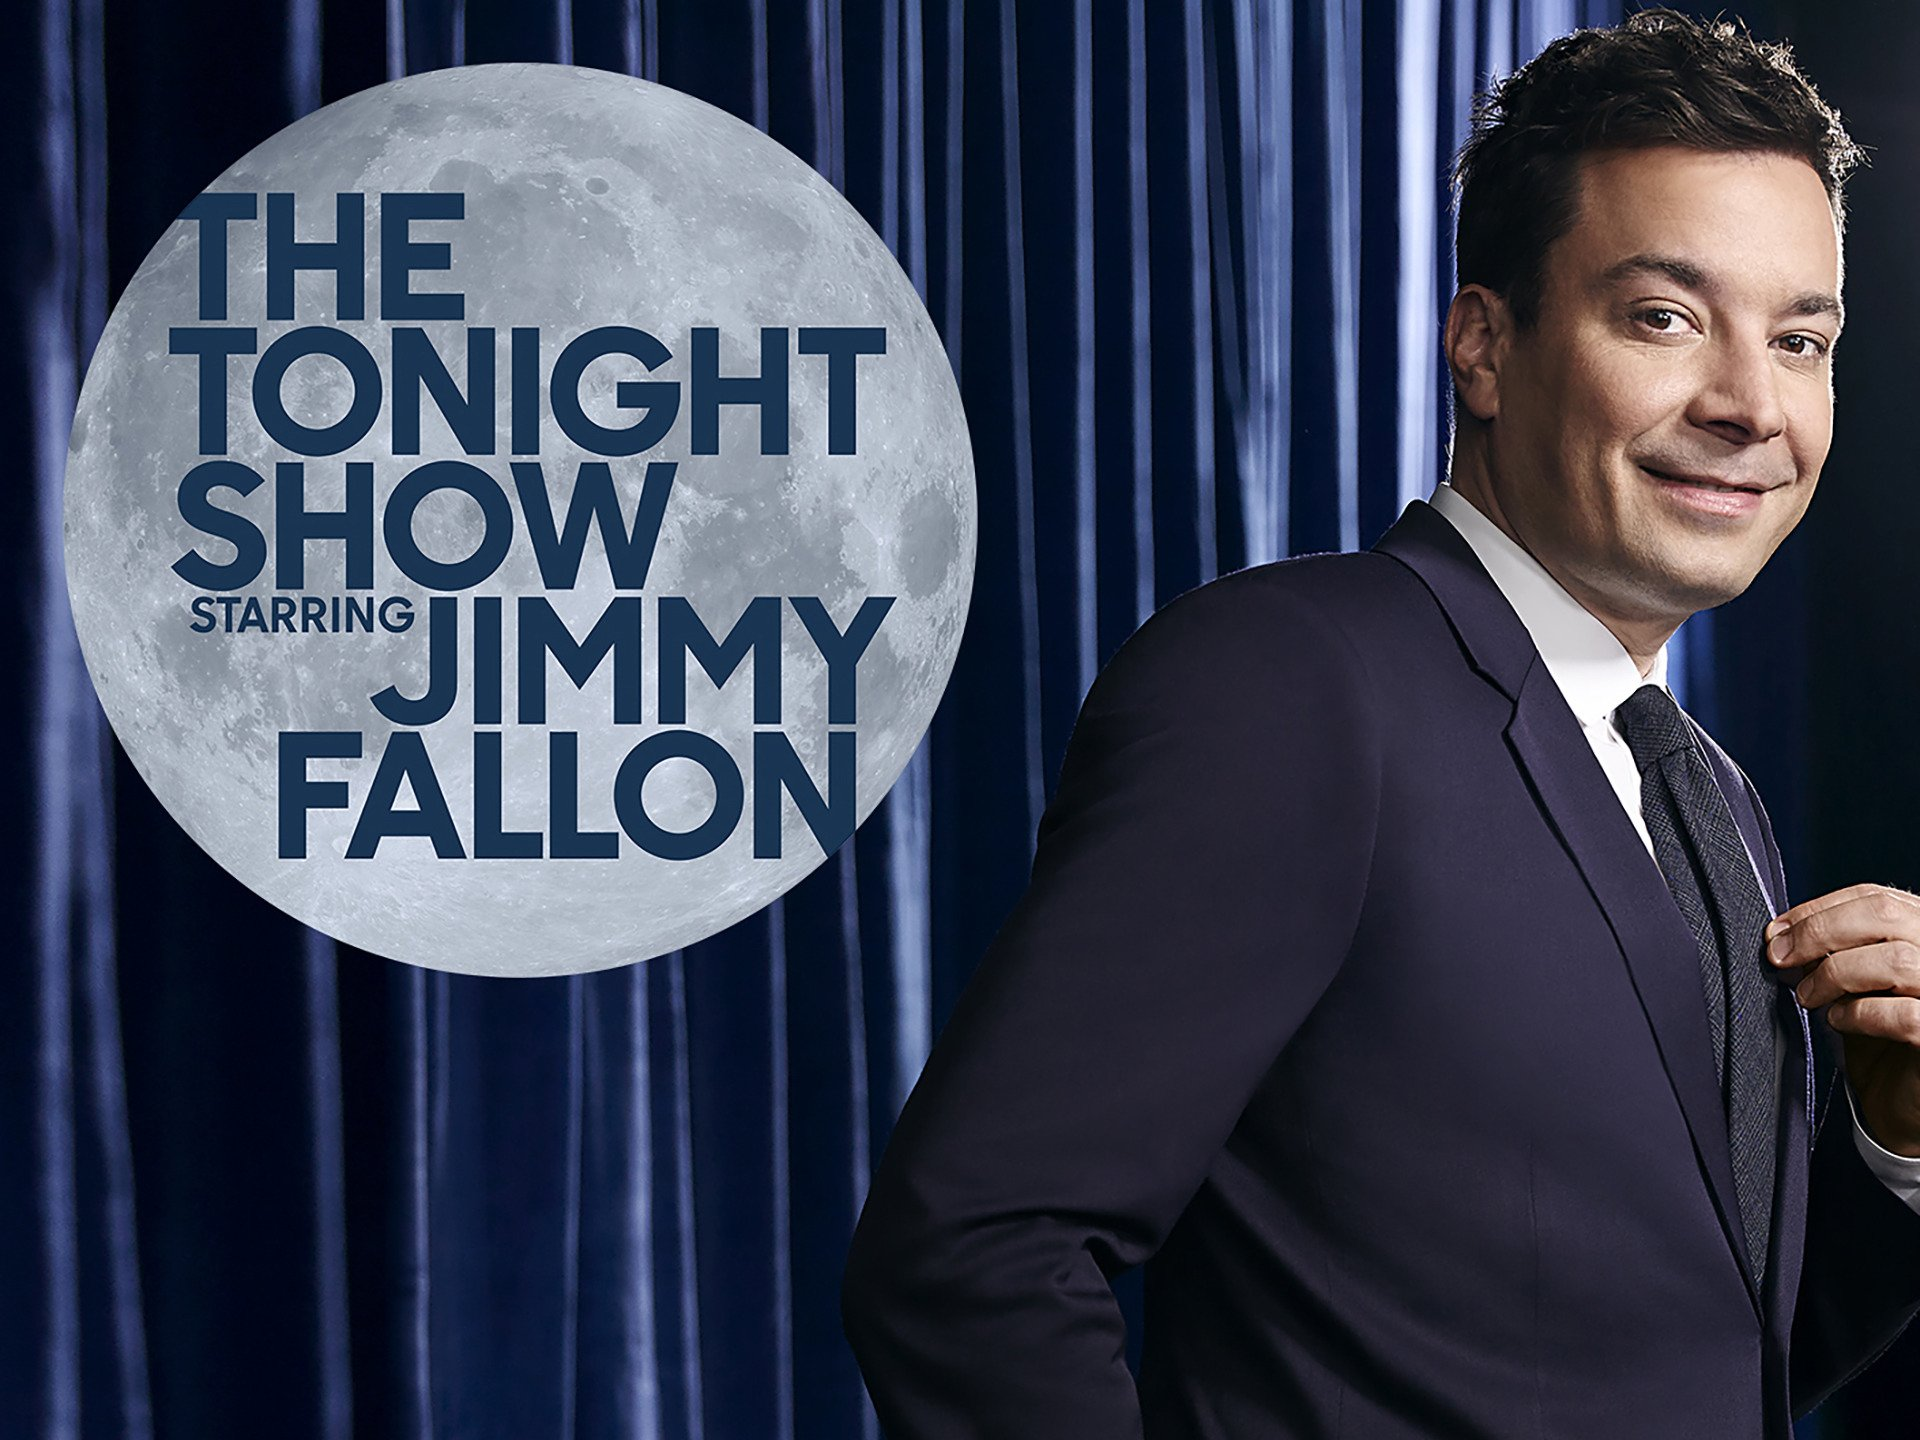 Amazon.com  Watch Highlights - The Tonight Show Starring Jimmy ... 2caad43e380